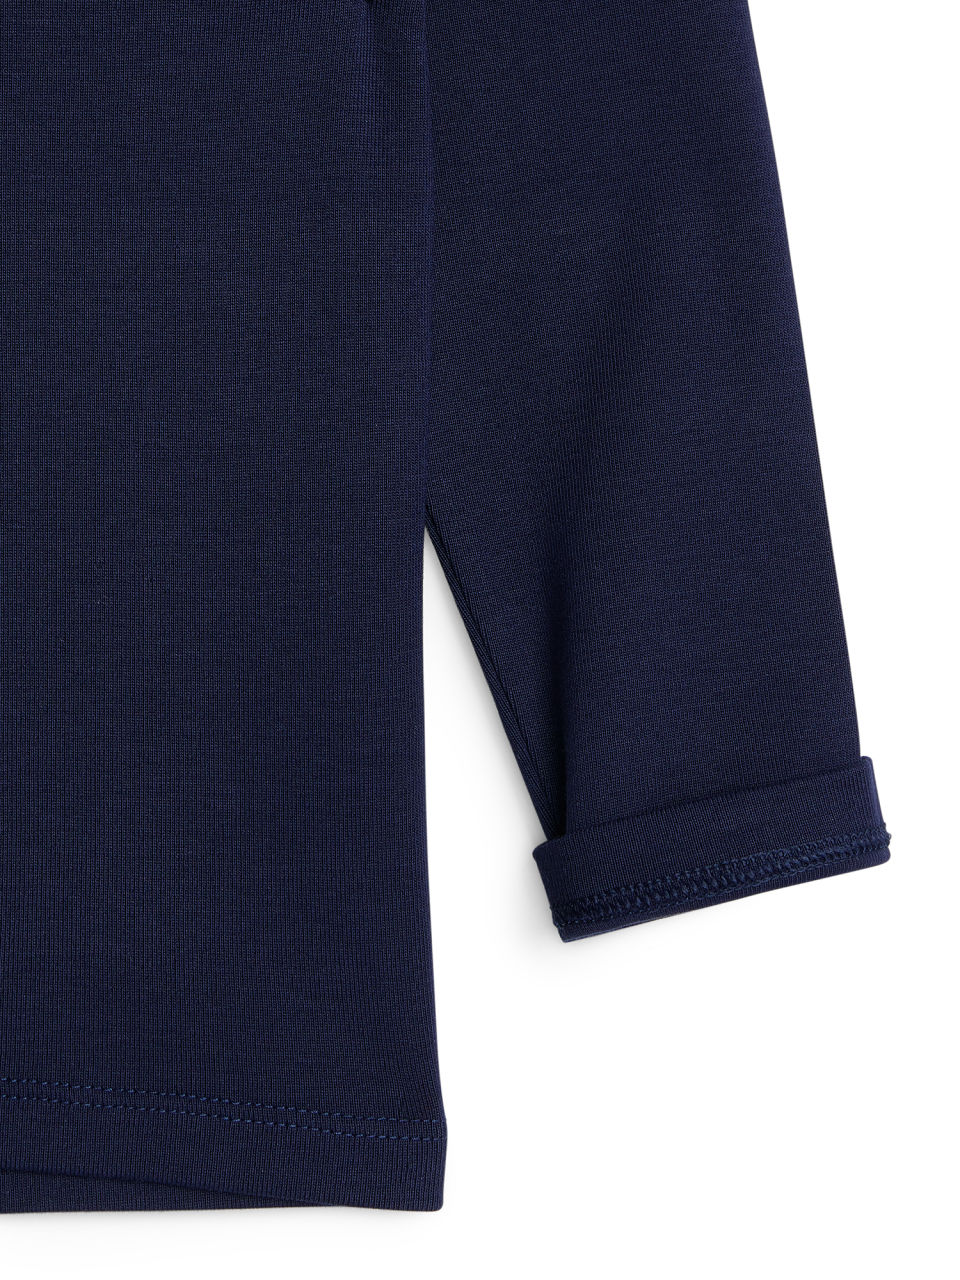 Side image of Arket long-sleeve t-shirt in blue